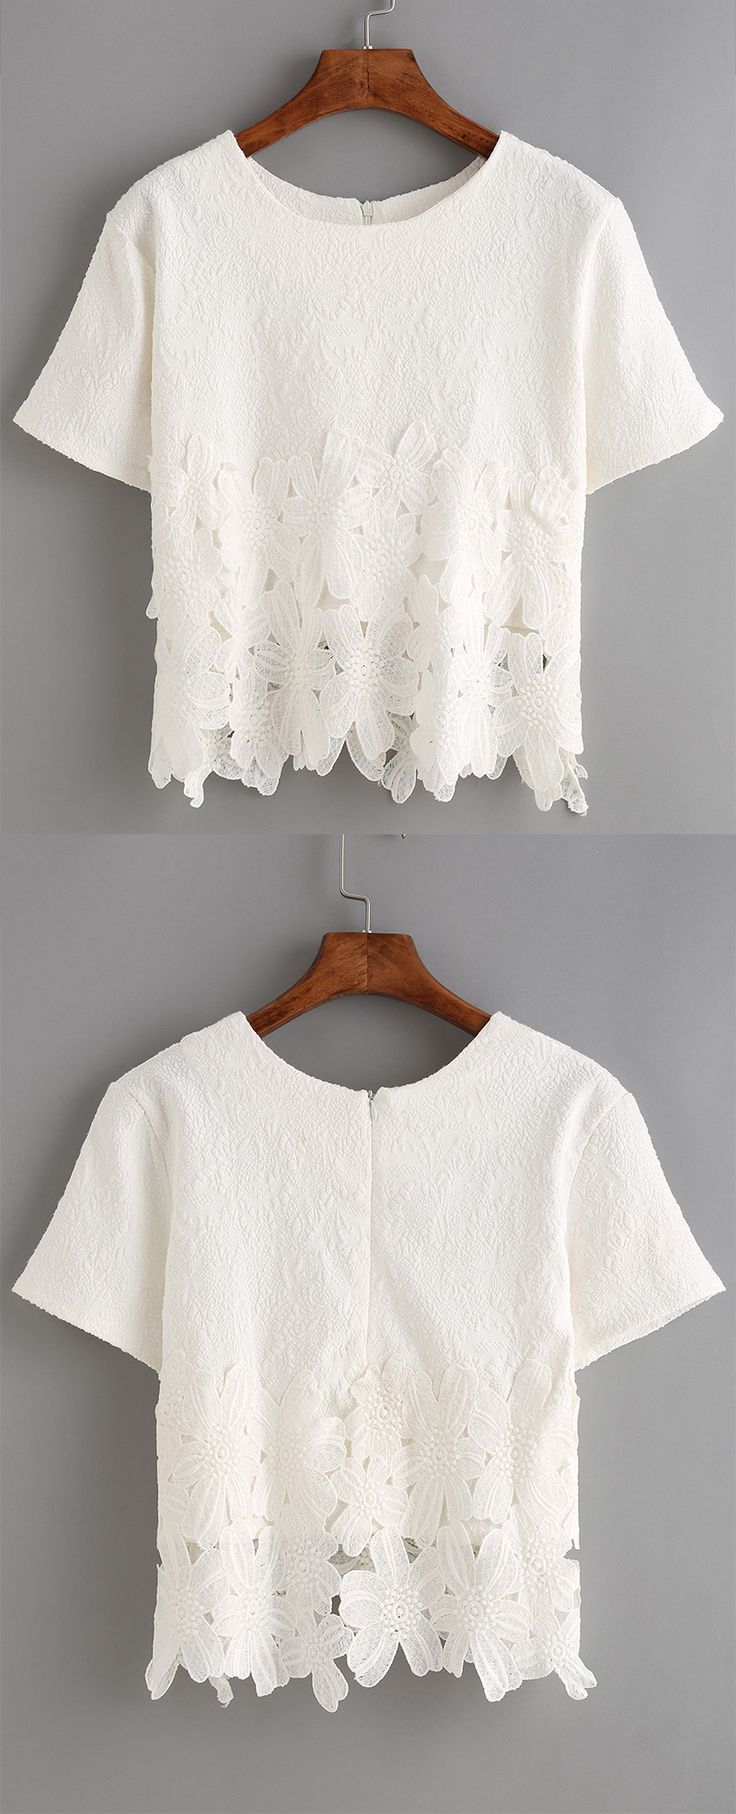 Love me some white lace for summer and what a steal this one is. | www.bold-in-gold.com   #boldingoldblog